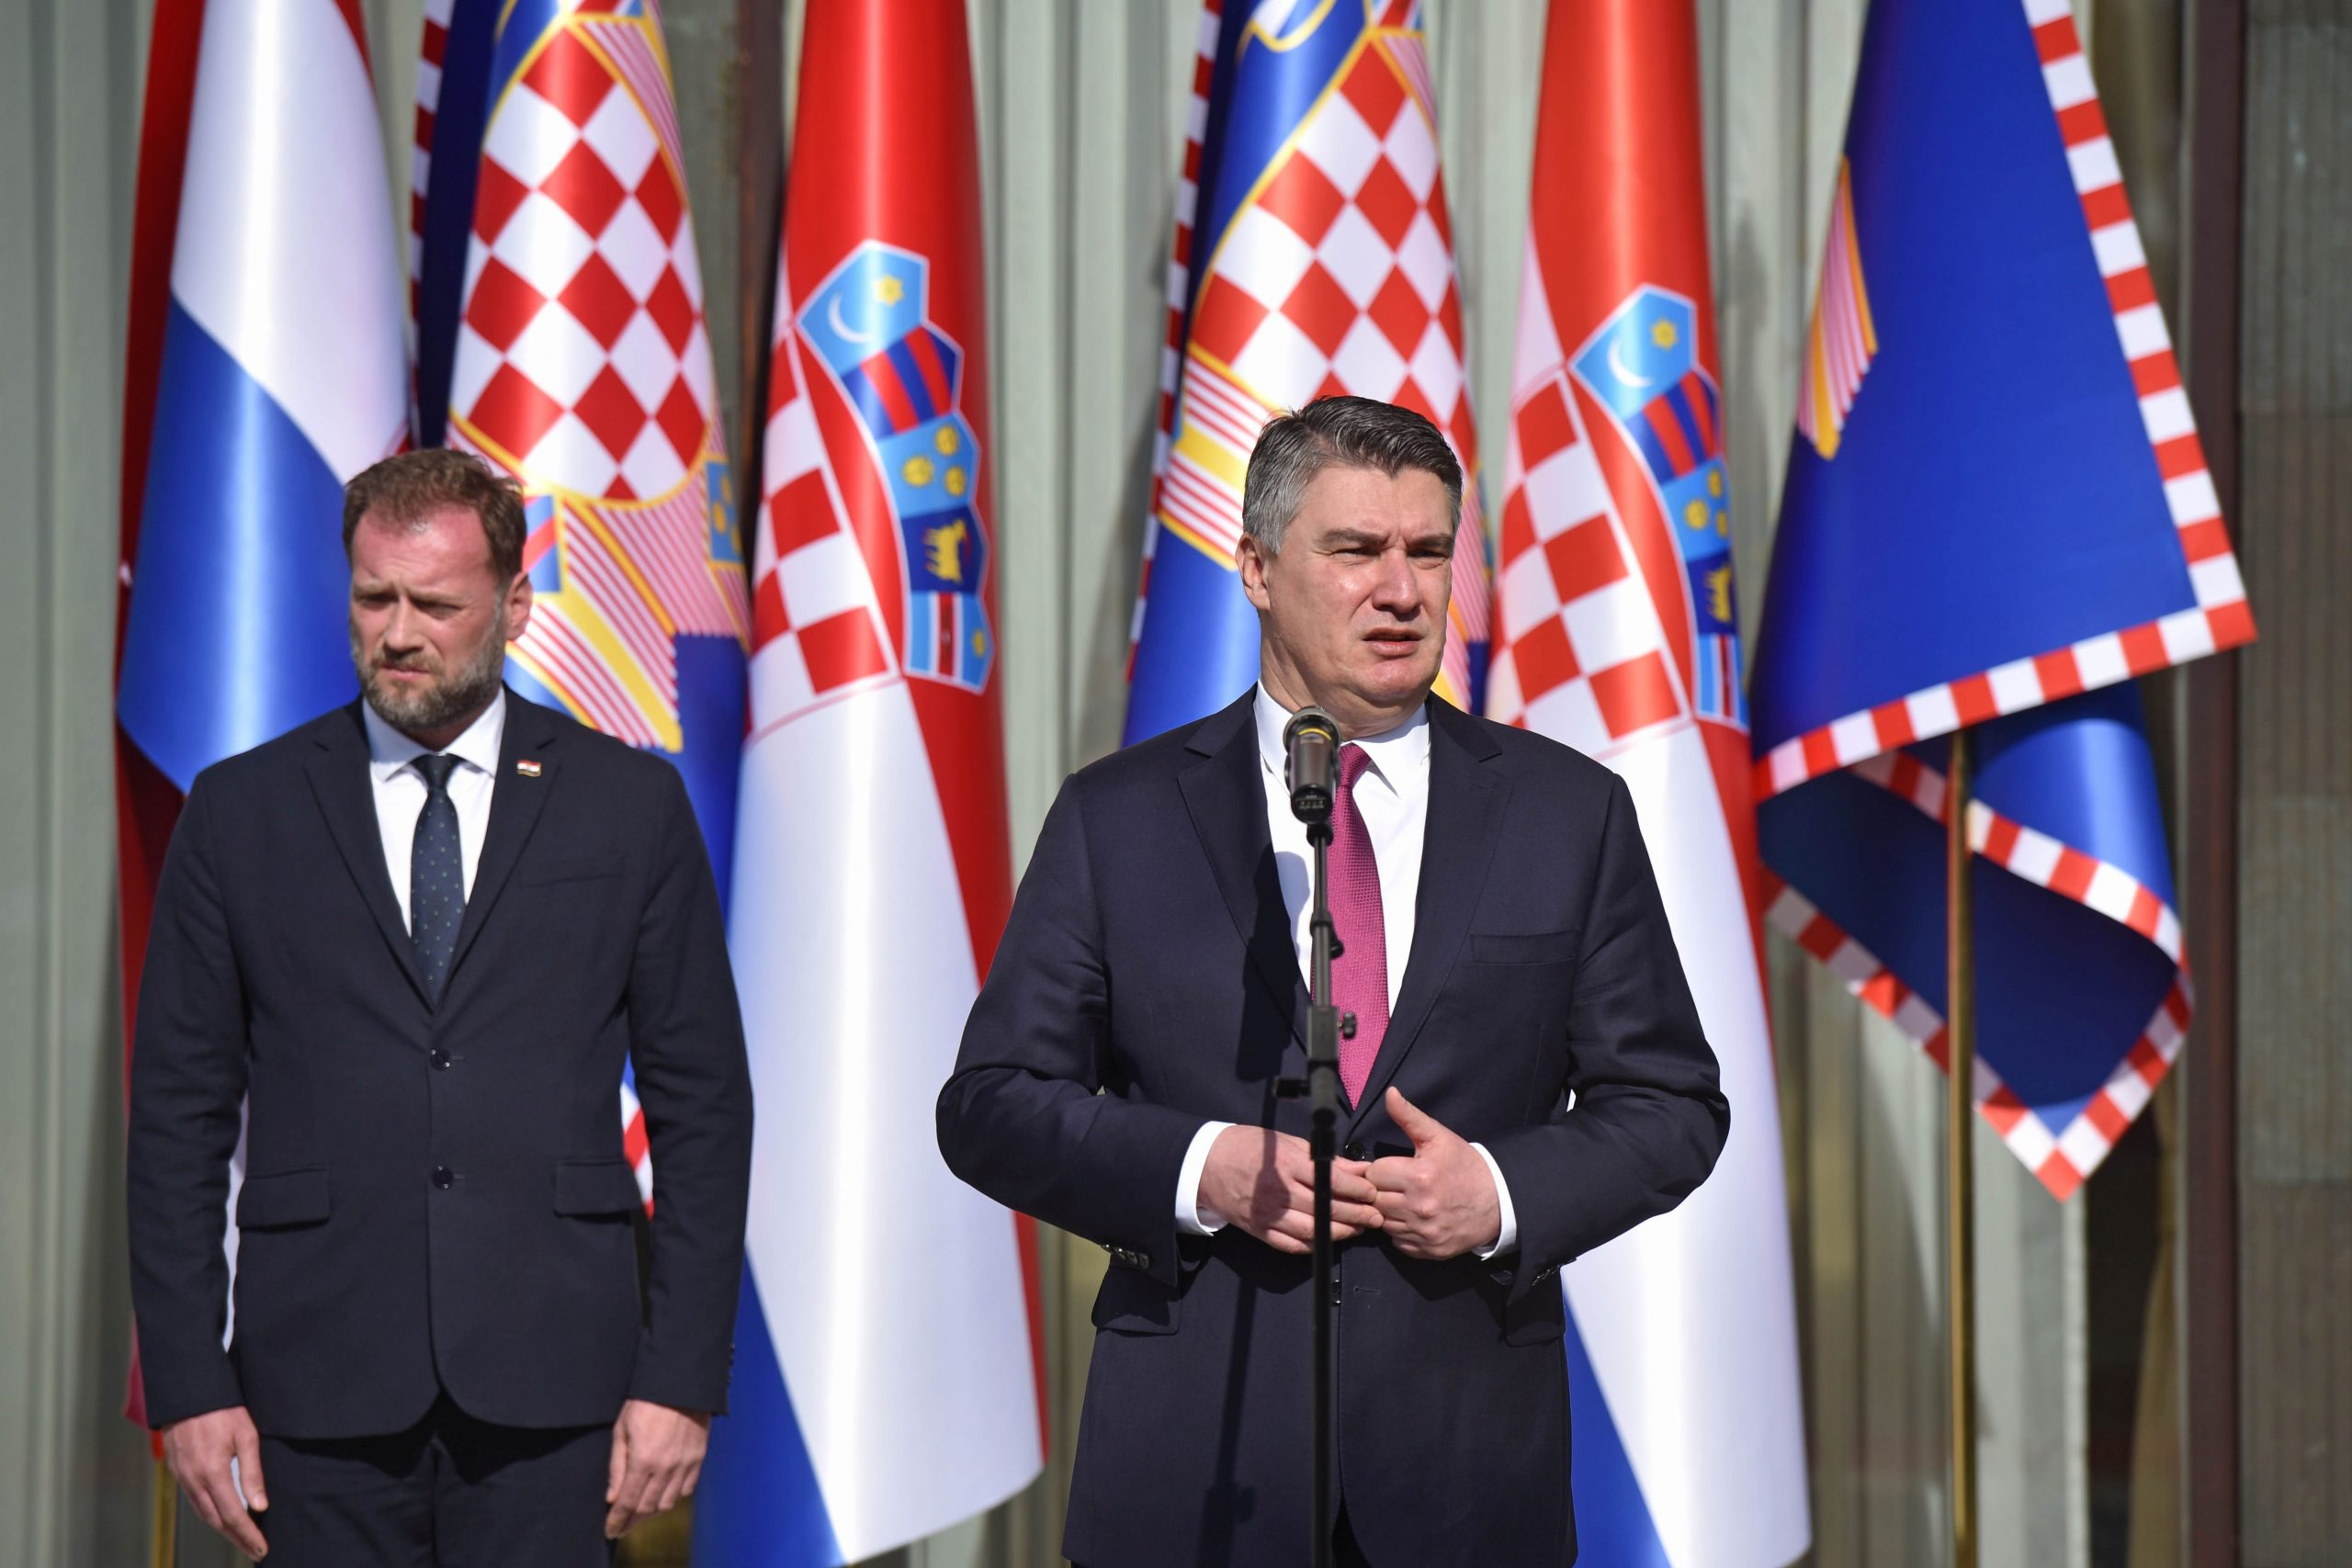 27th anniversary of Croatia's Honorary Protection Battalion marked